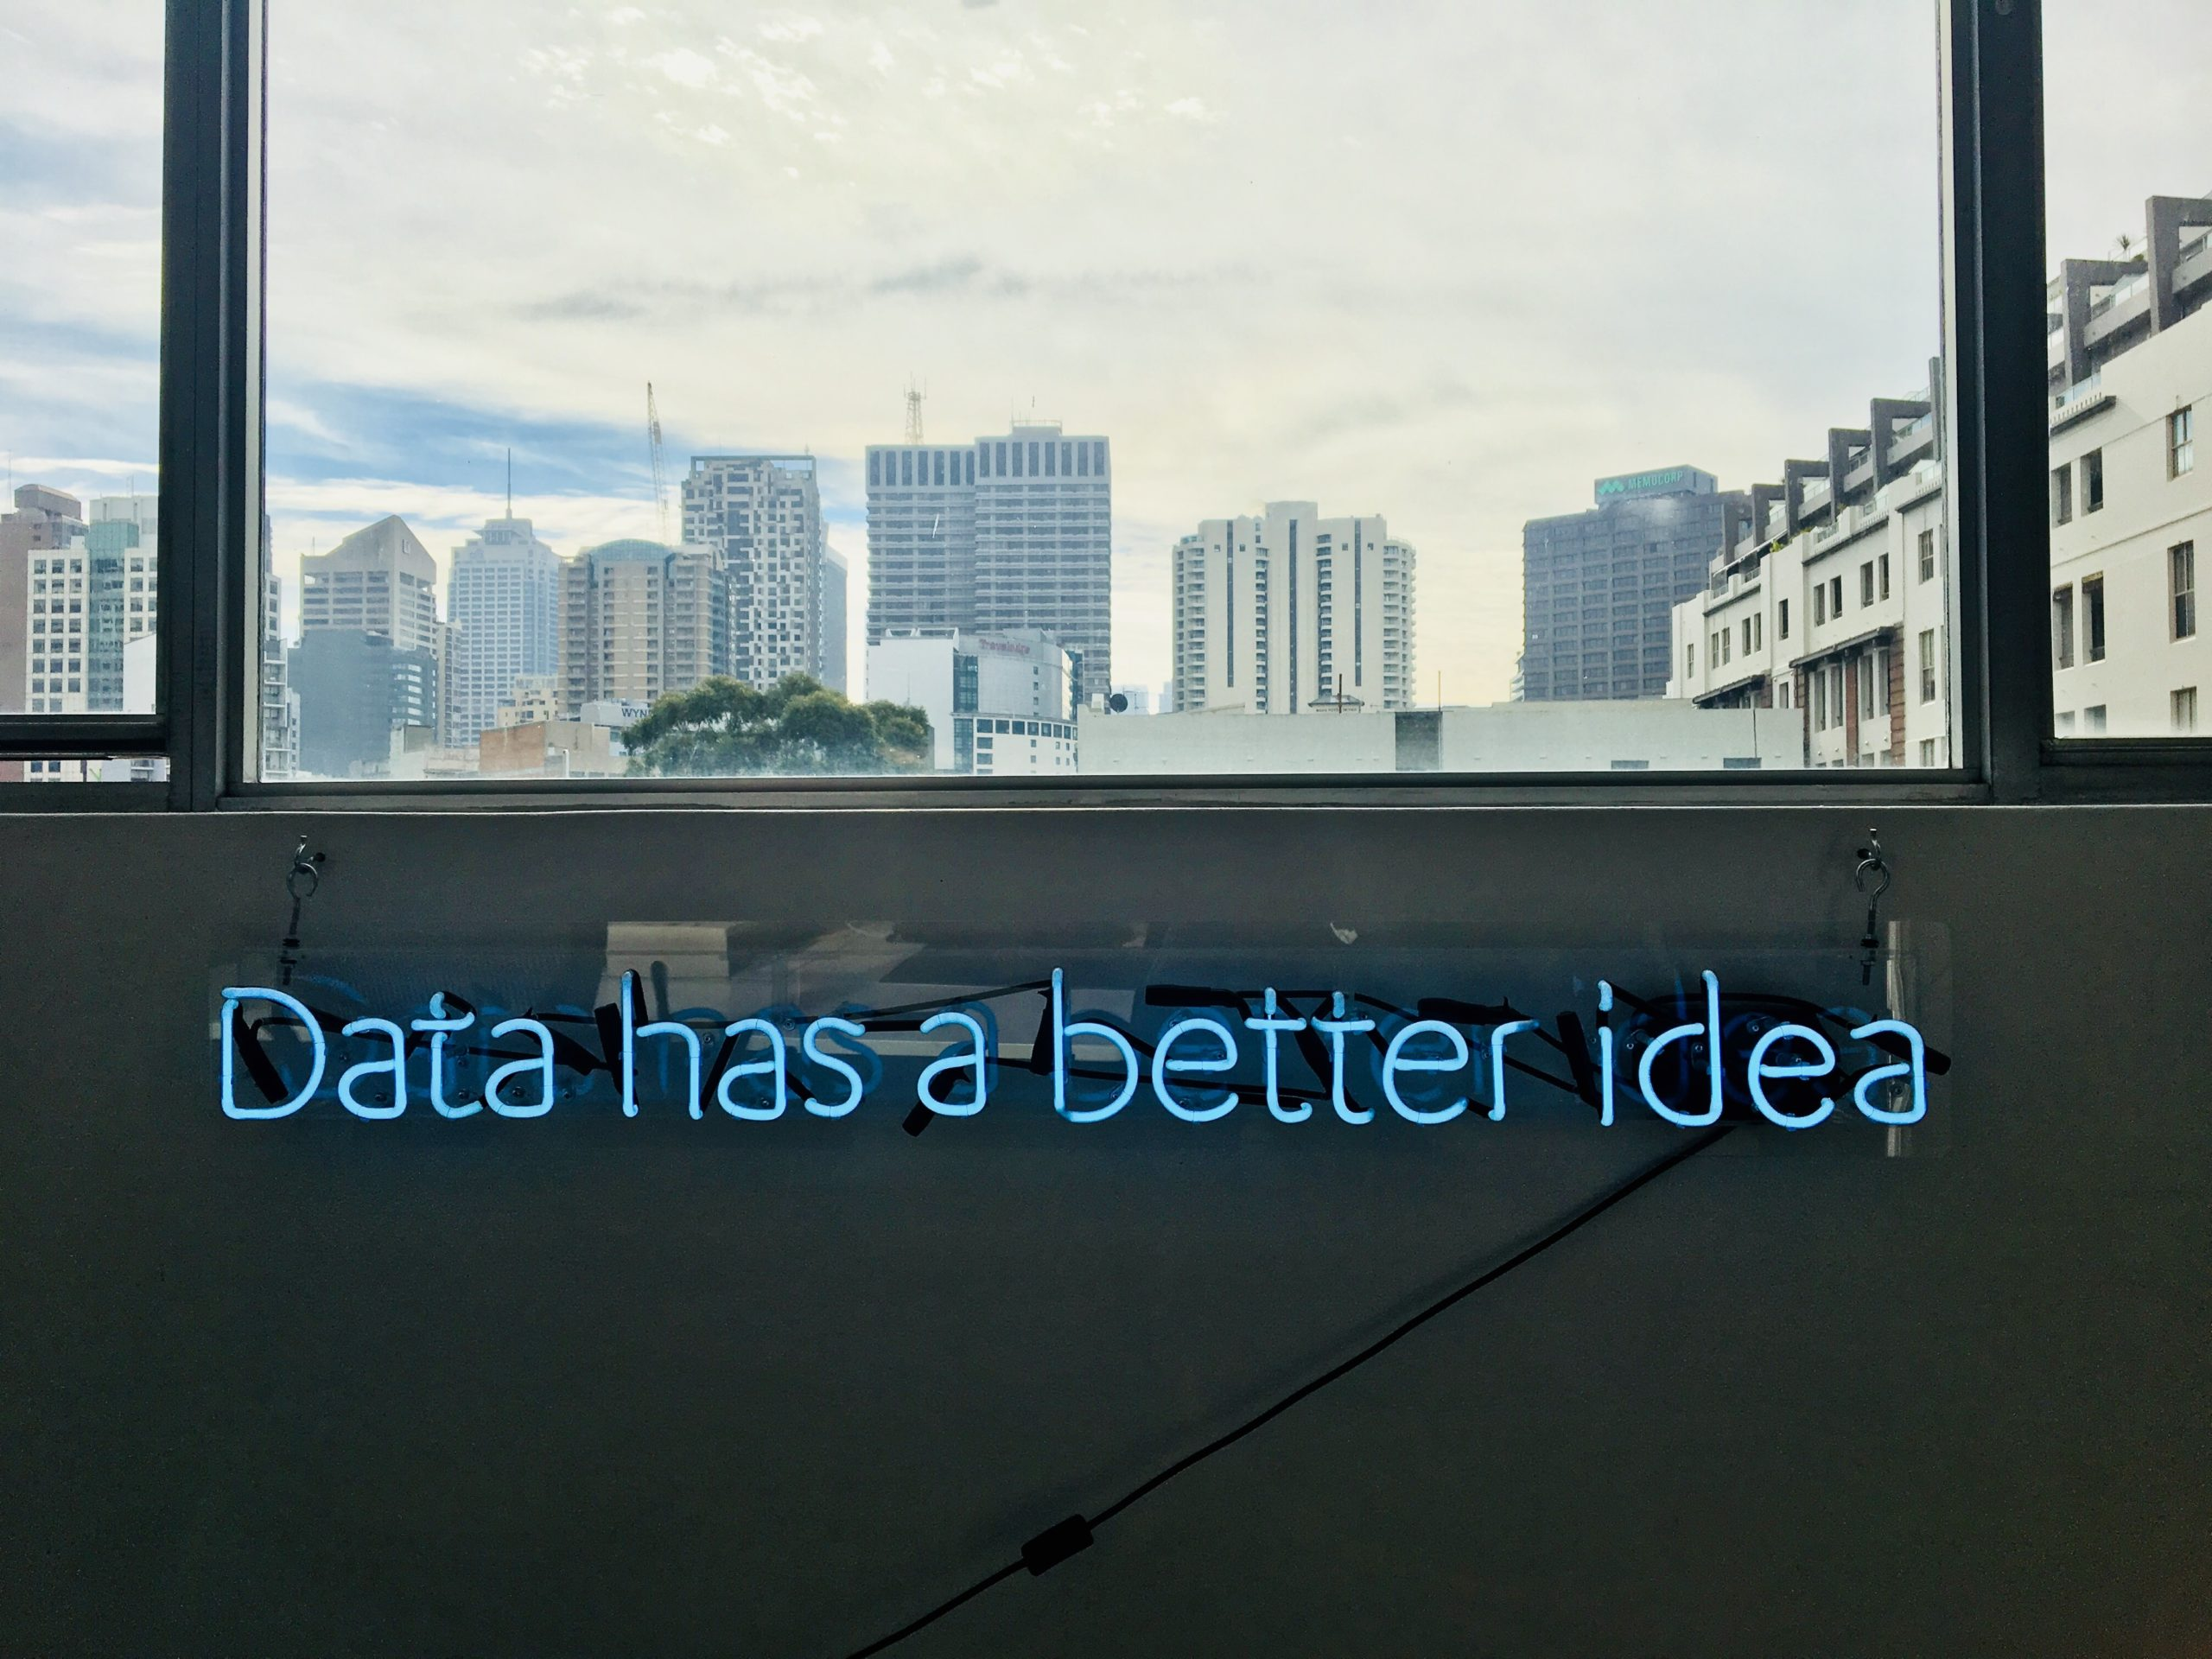 data has a better idea quote about developing software and AI